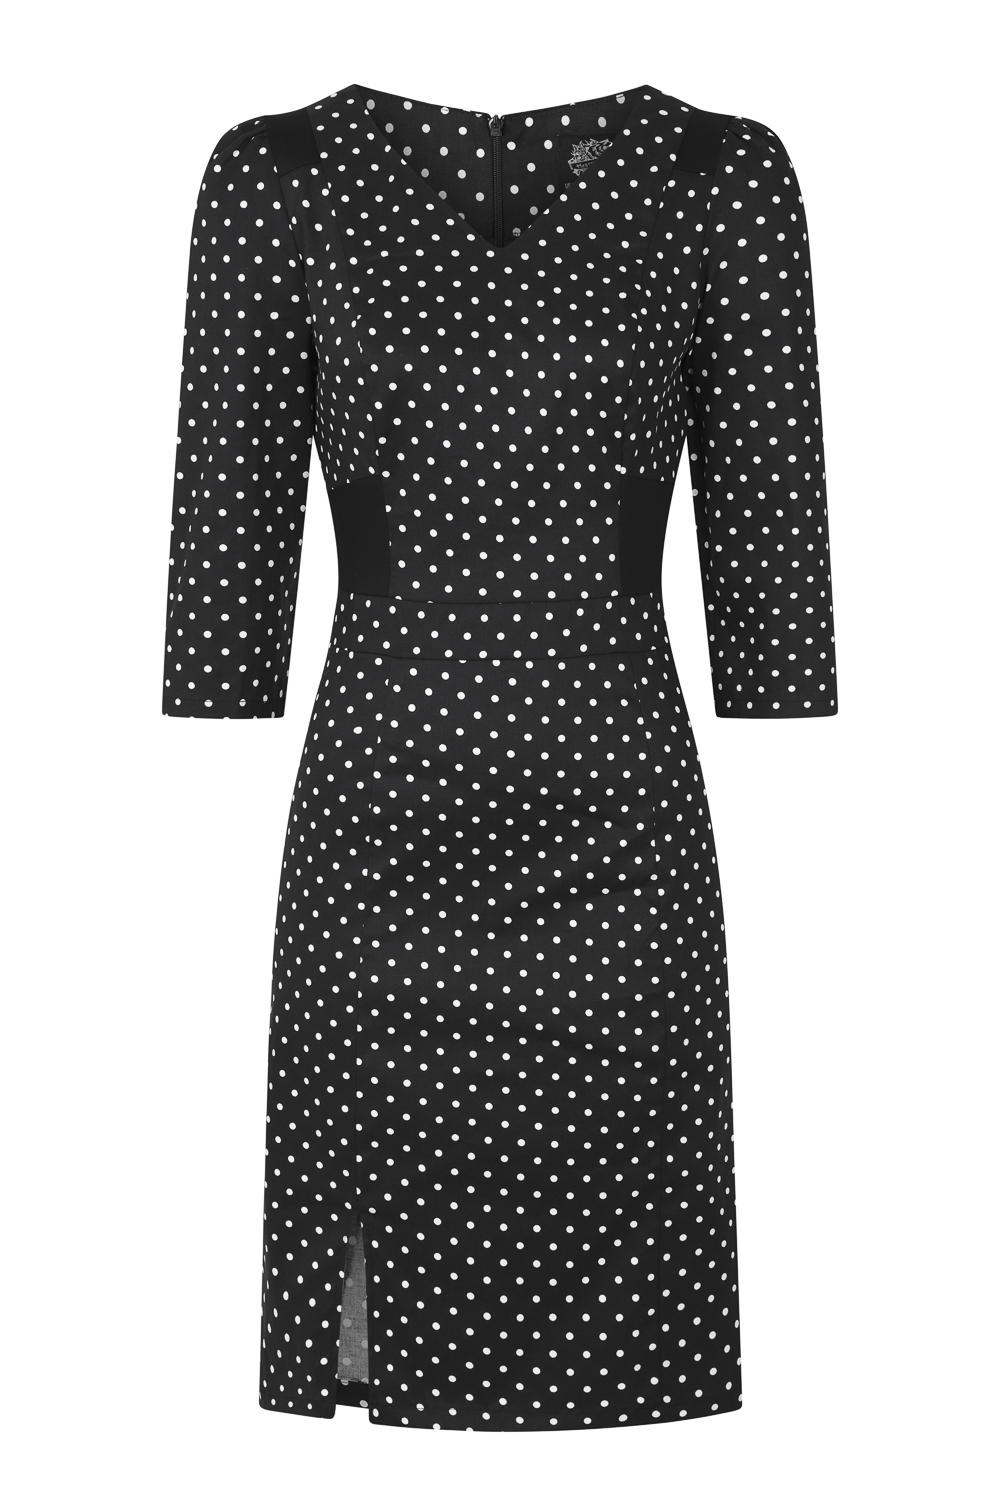 Cecelia Polka Dot Wiggle Dress